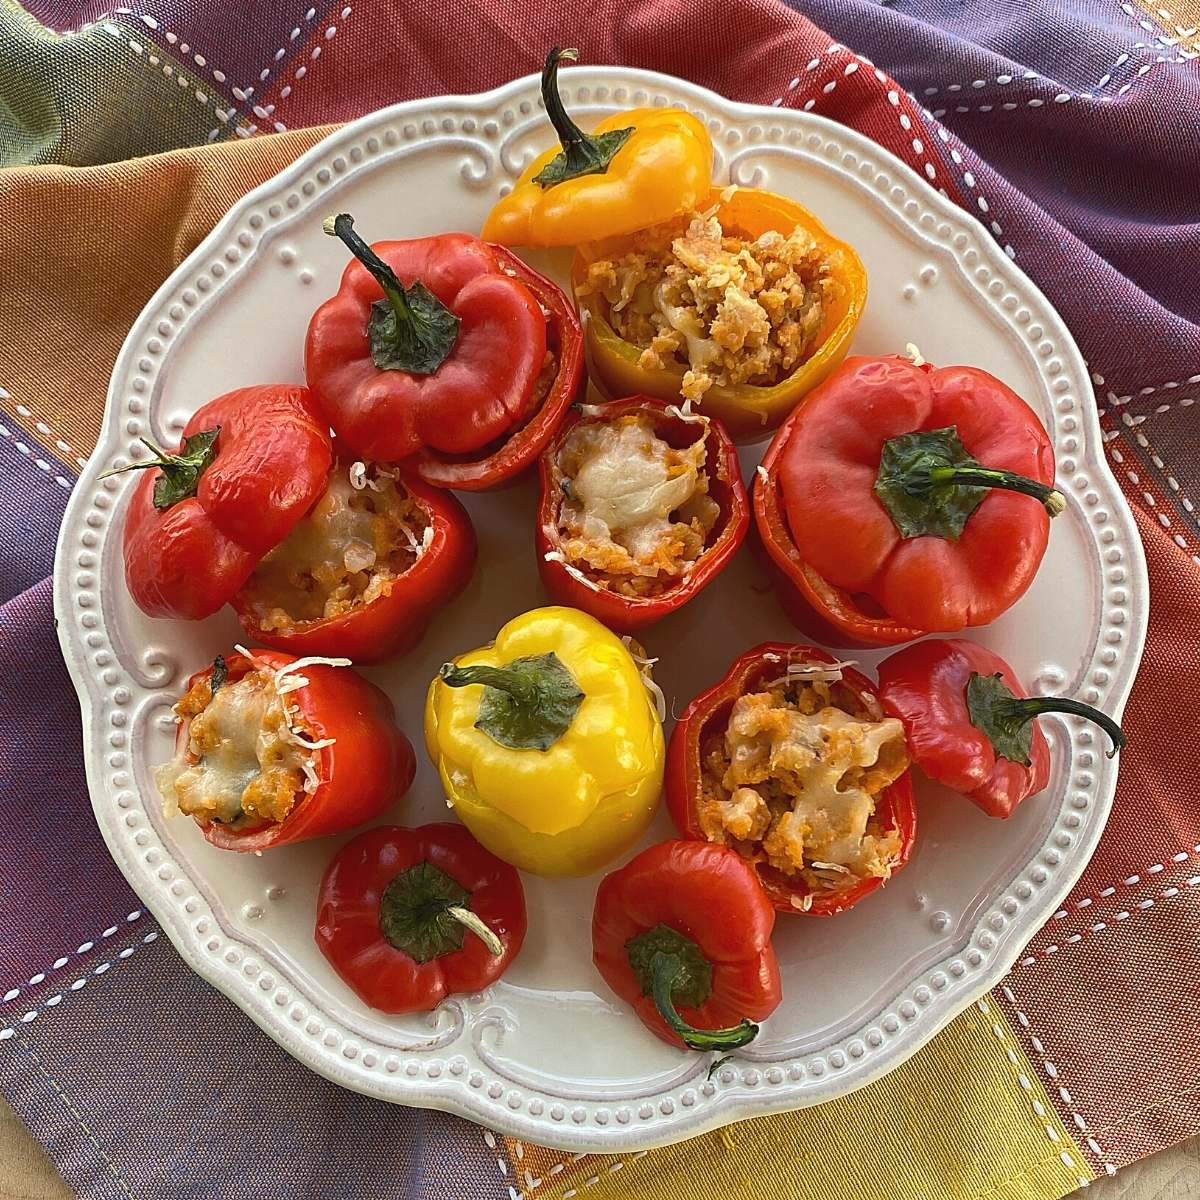 Plate of cooked baby bell peppers stuffed with leftover meatloaf.